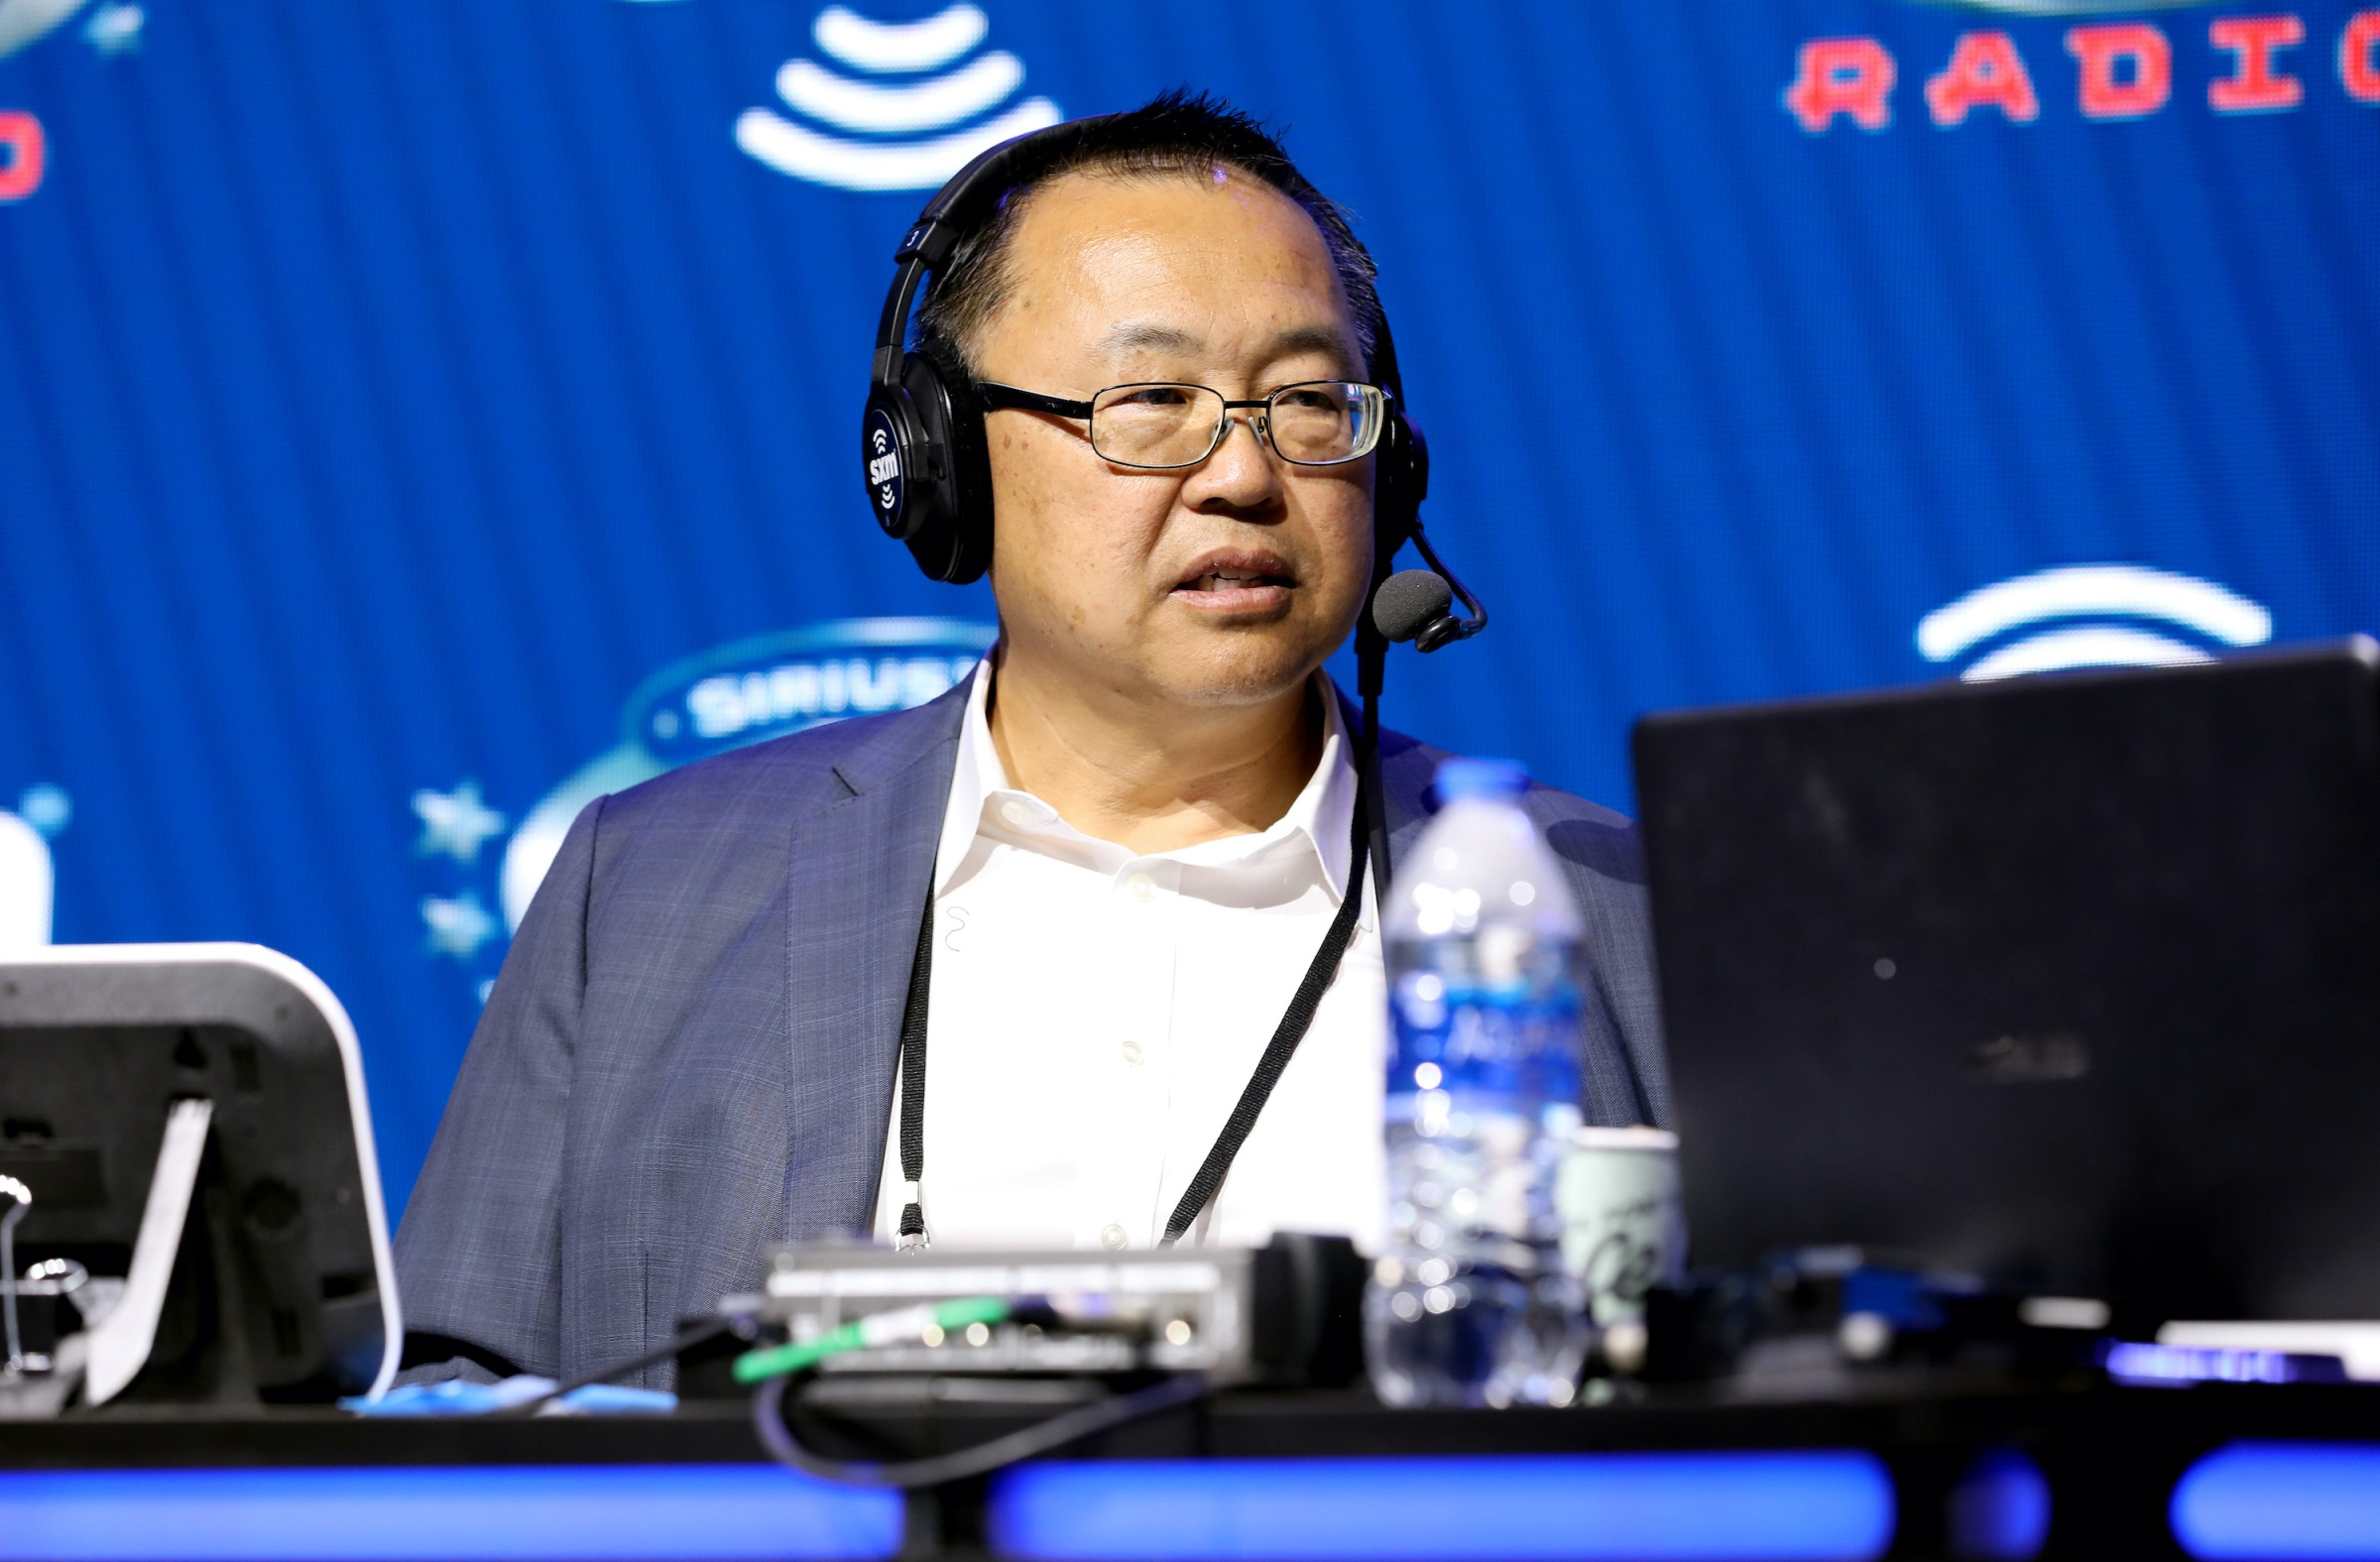 David Chao speaks onstage during day 2 of SiriusXM at Super Bowl LIV on January 30, 2020 in Miami, Florida.